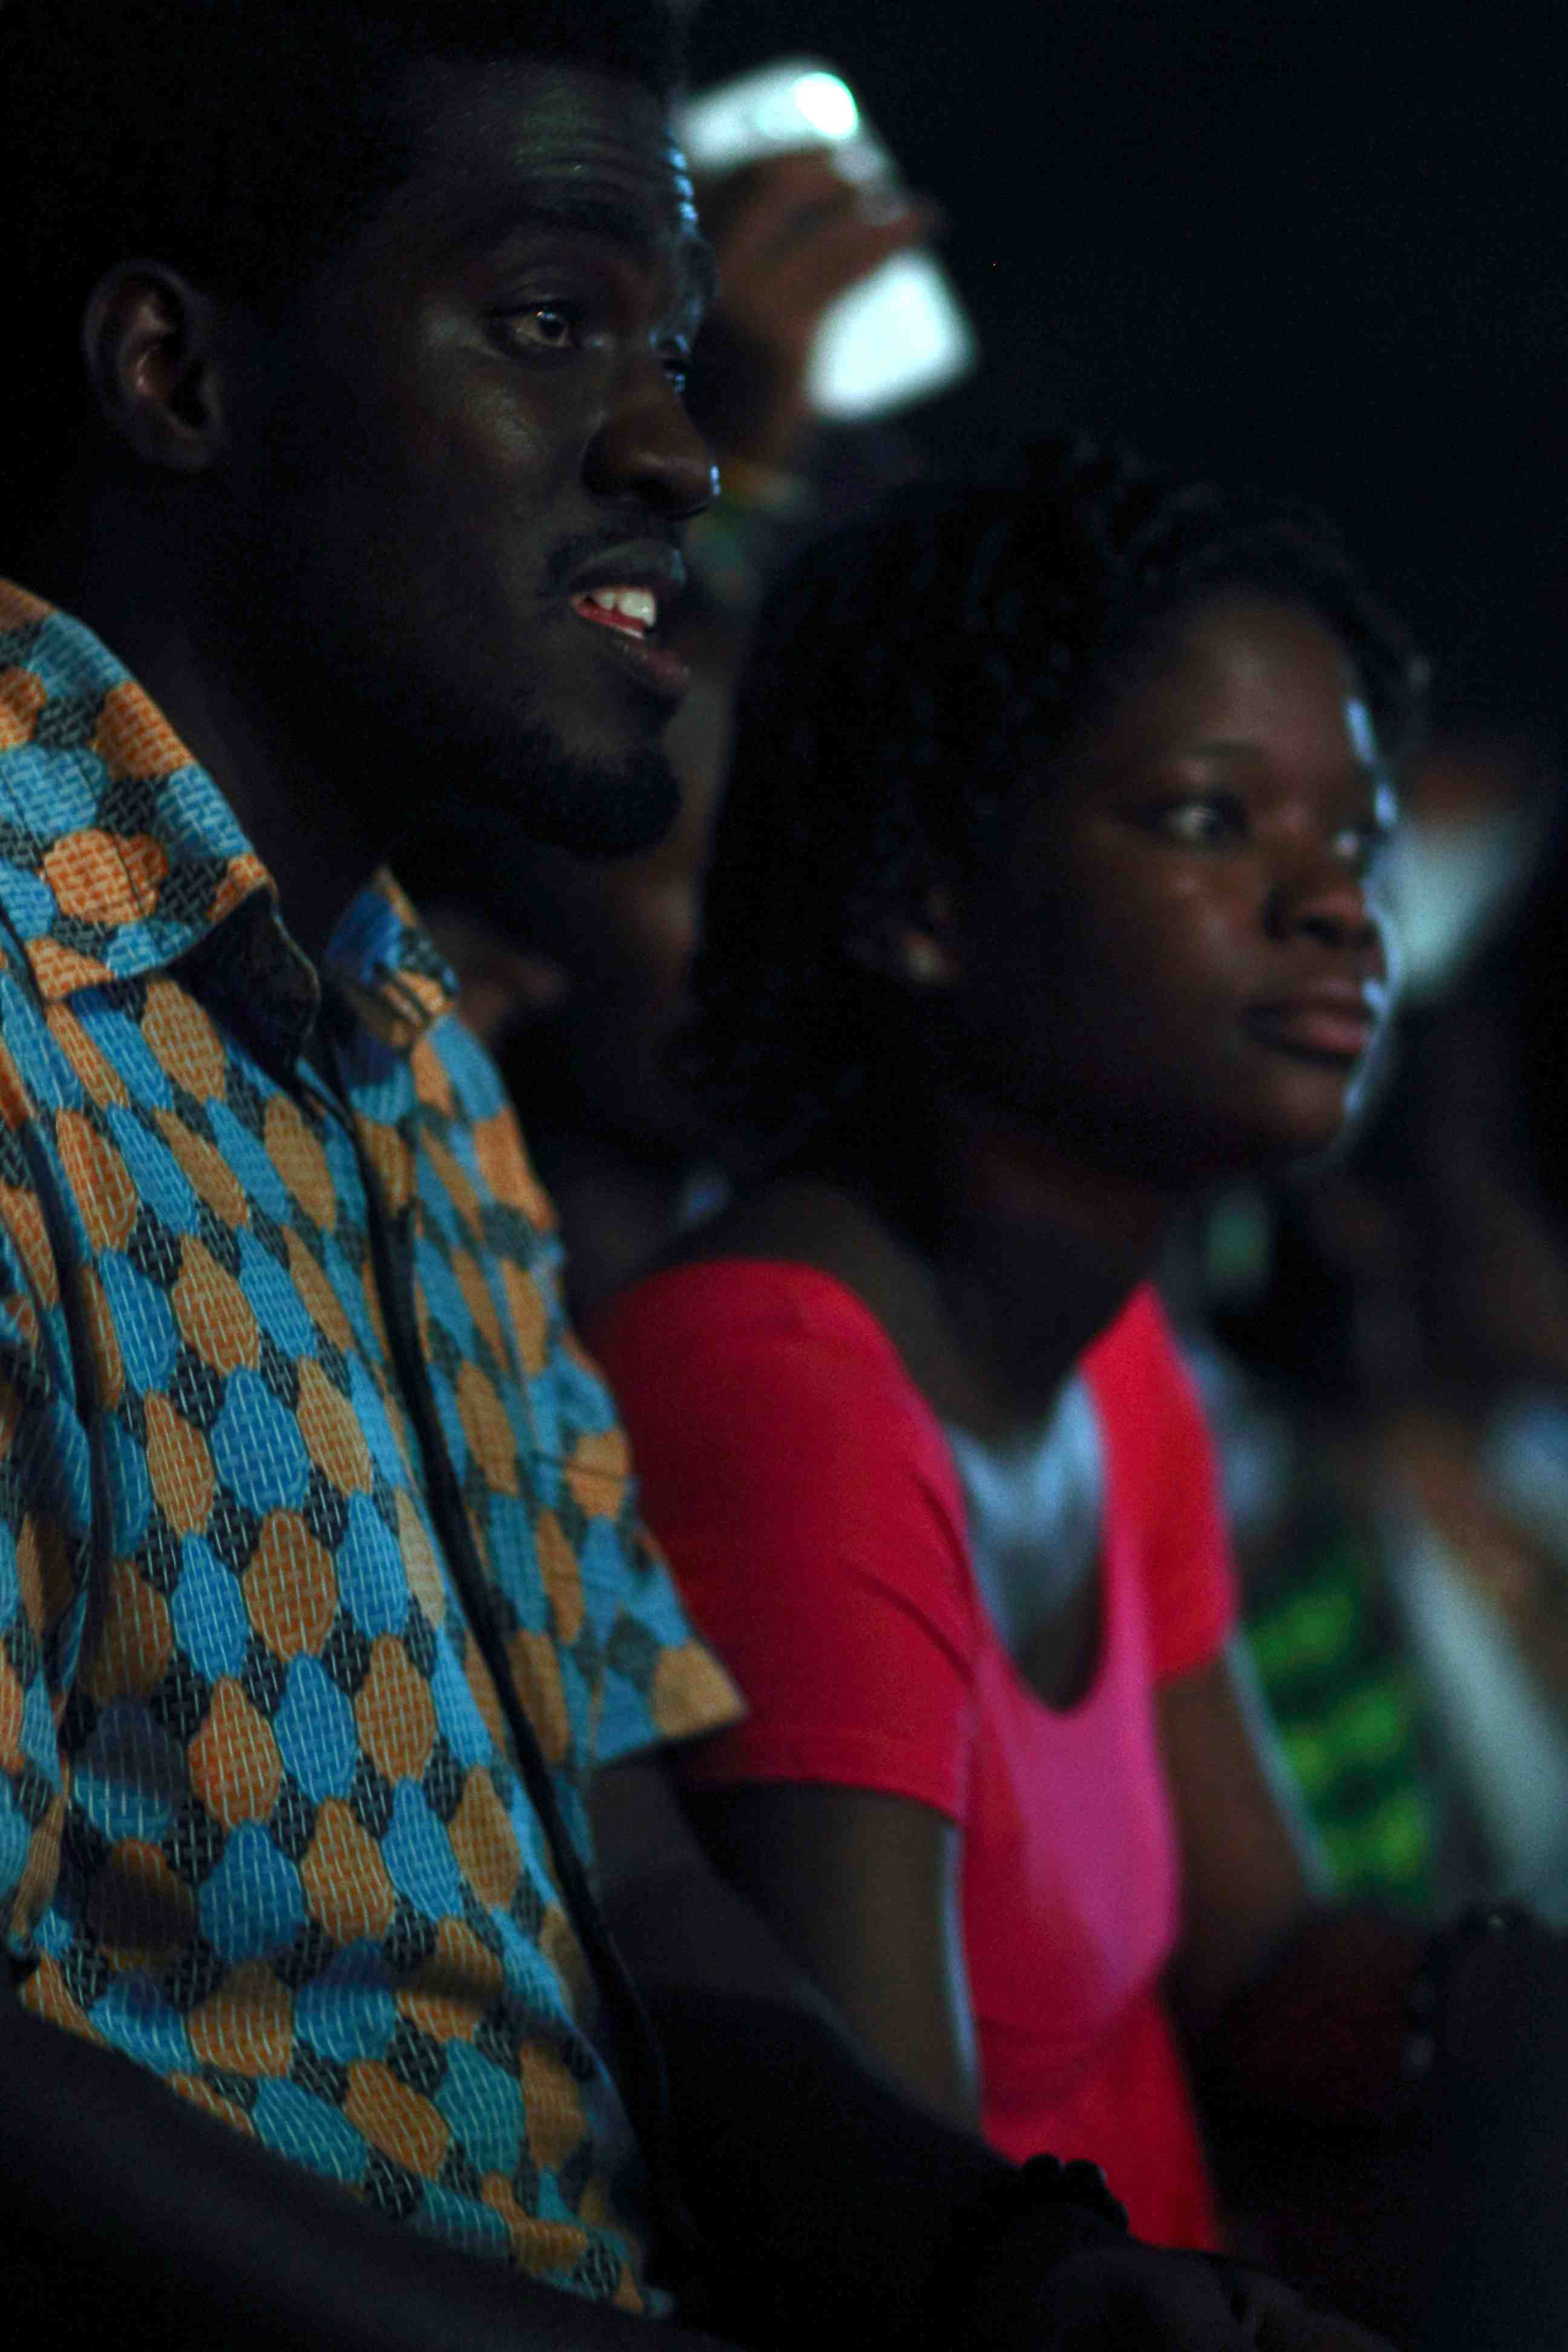 Crowd6 - IND!E FUSE - photo by ACCRA [dot] ALT